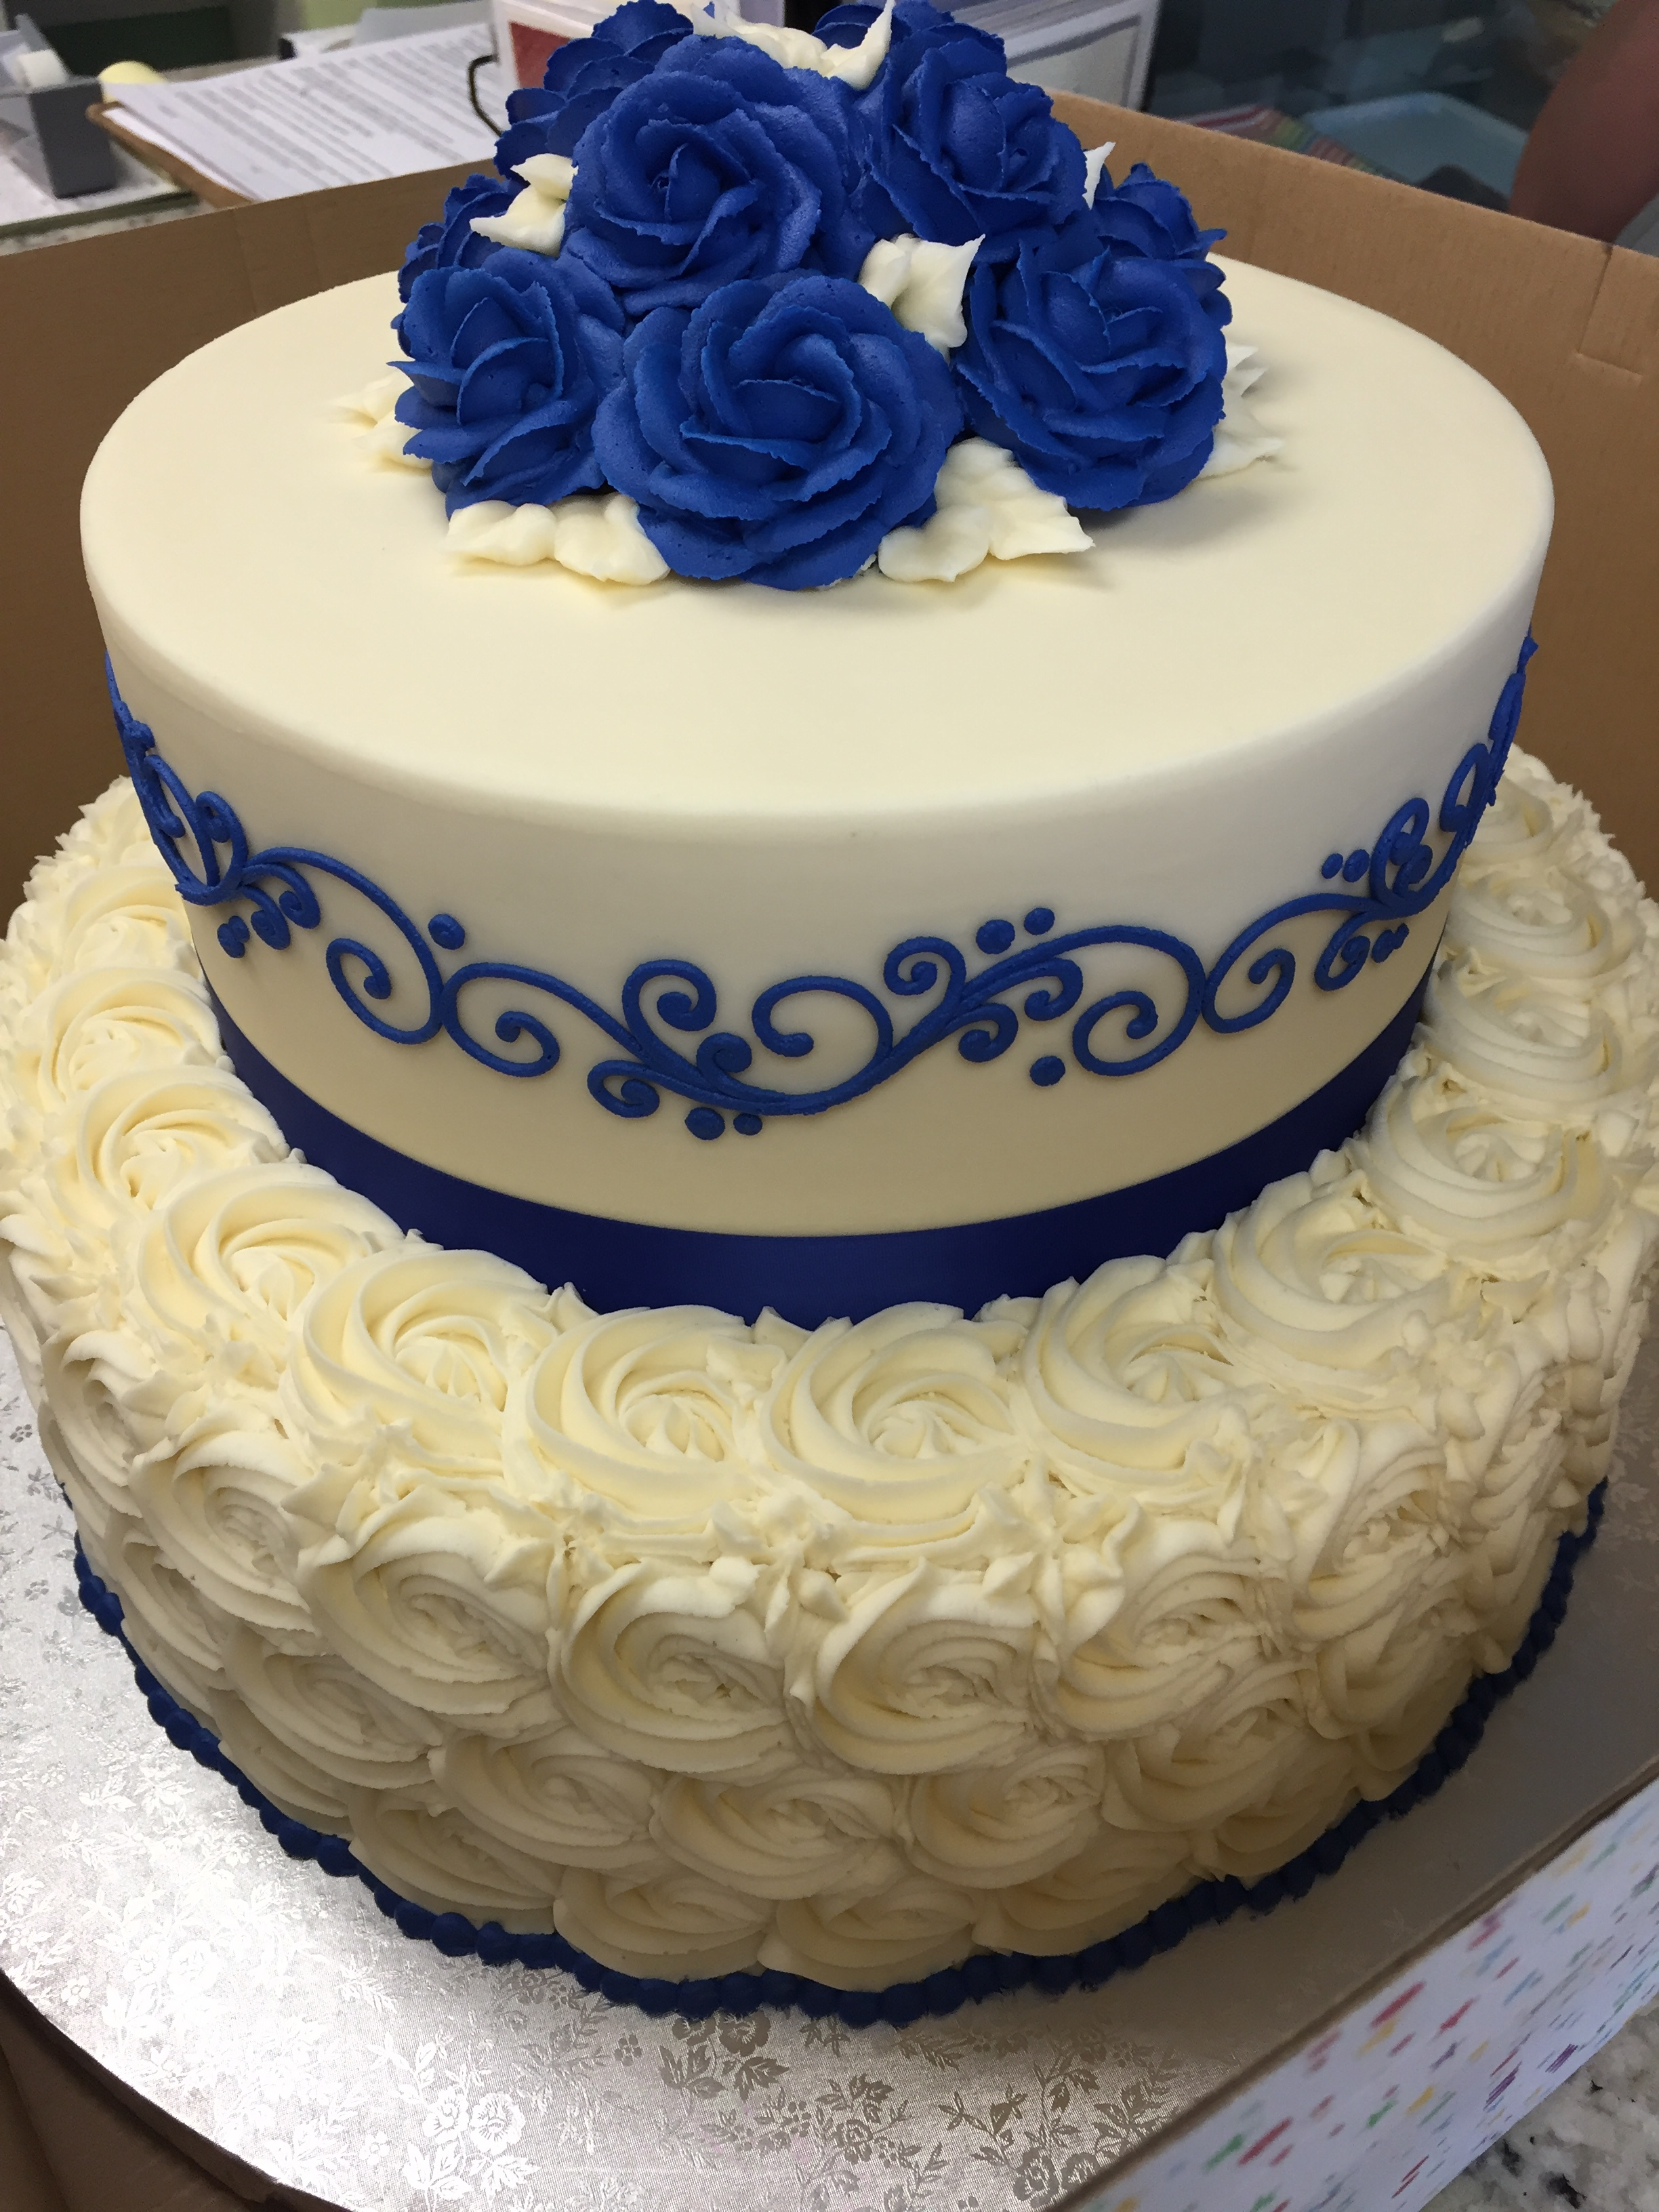 Blue Butter Cream Roses for the Bride to Be